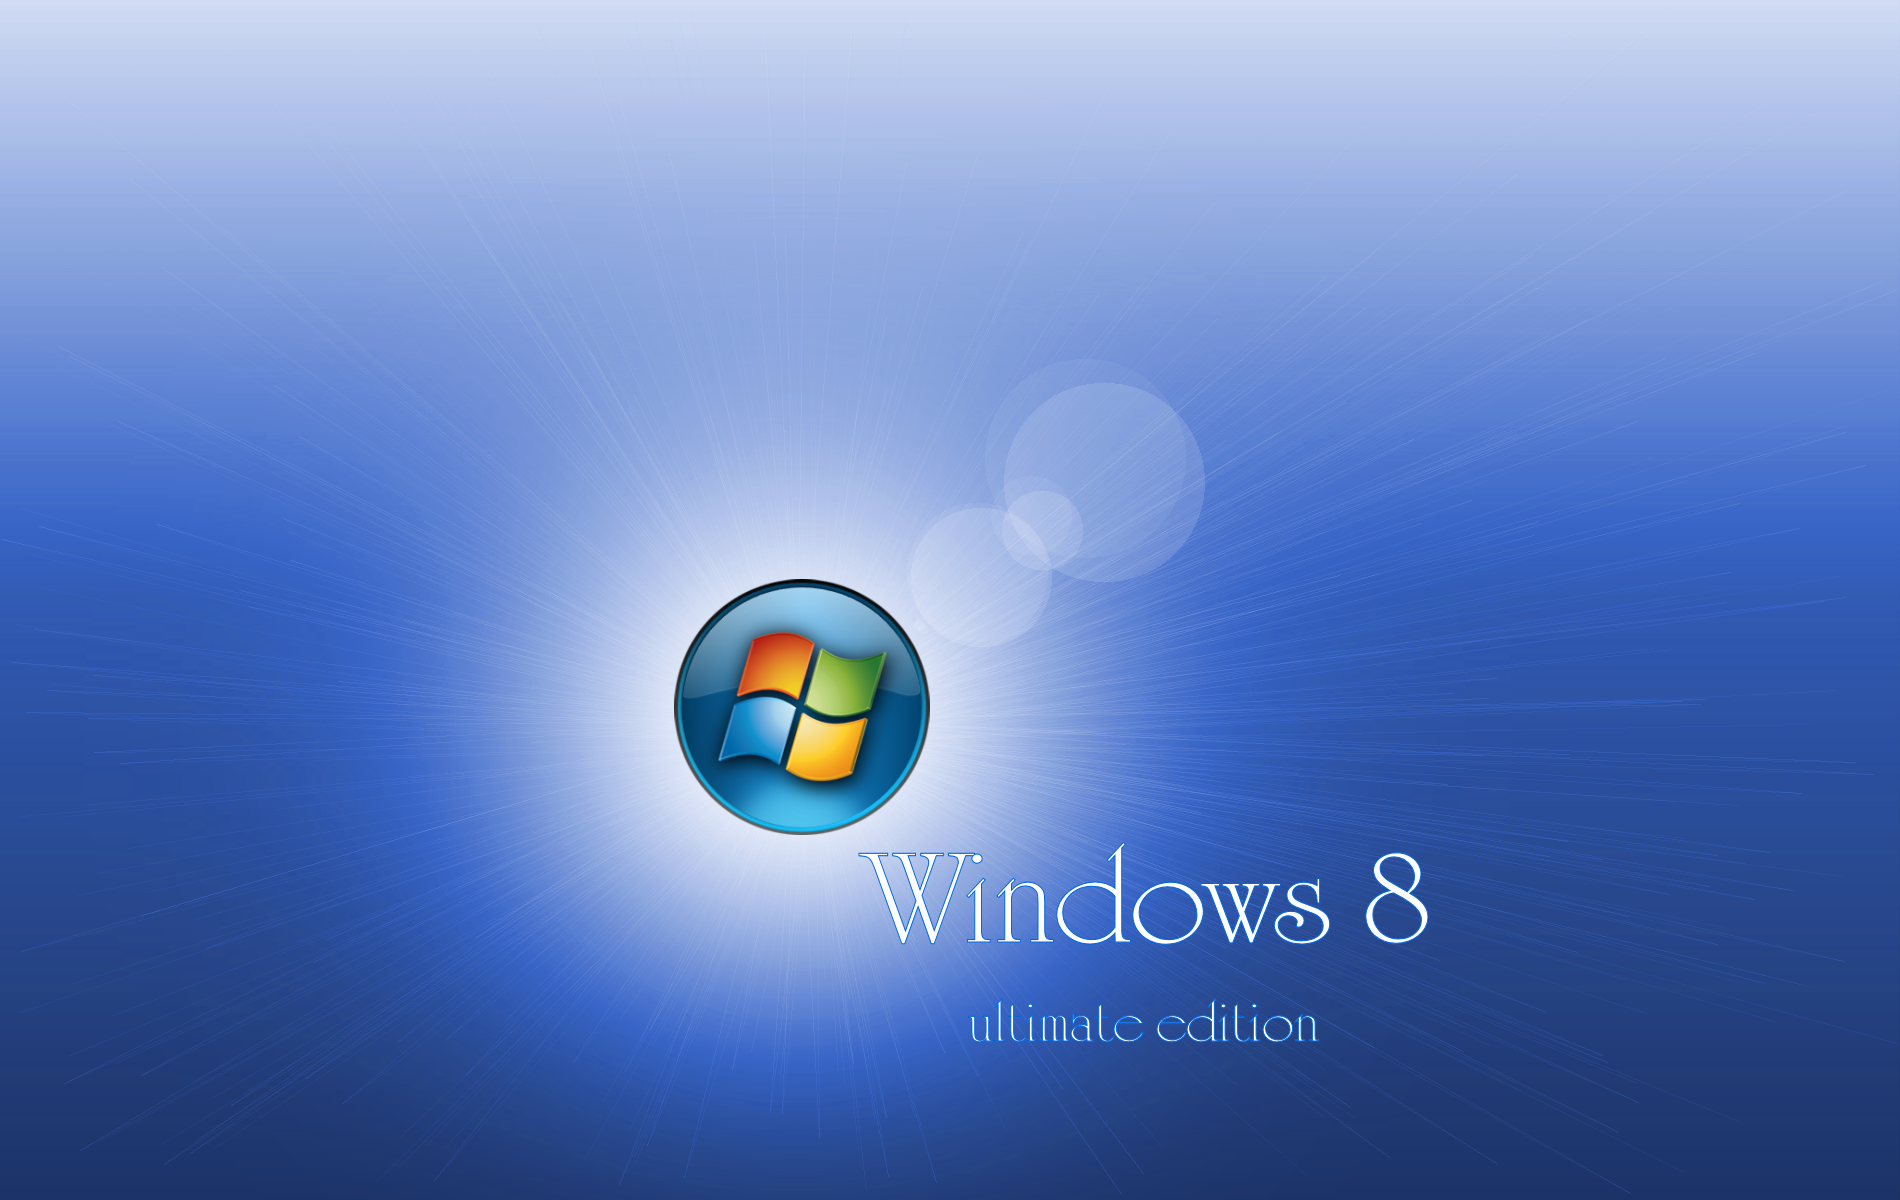 windows 8 wallpapers free windows 8 wallpapers download desktop